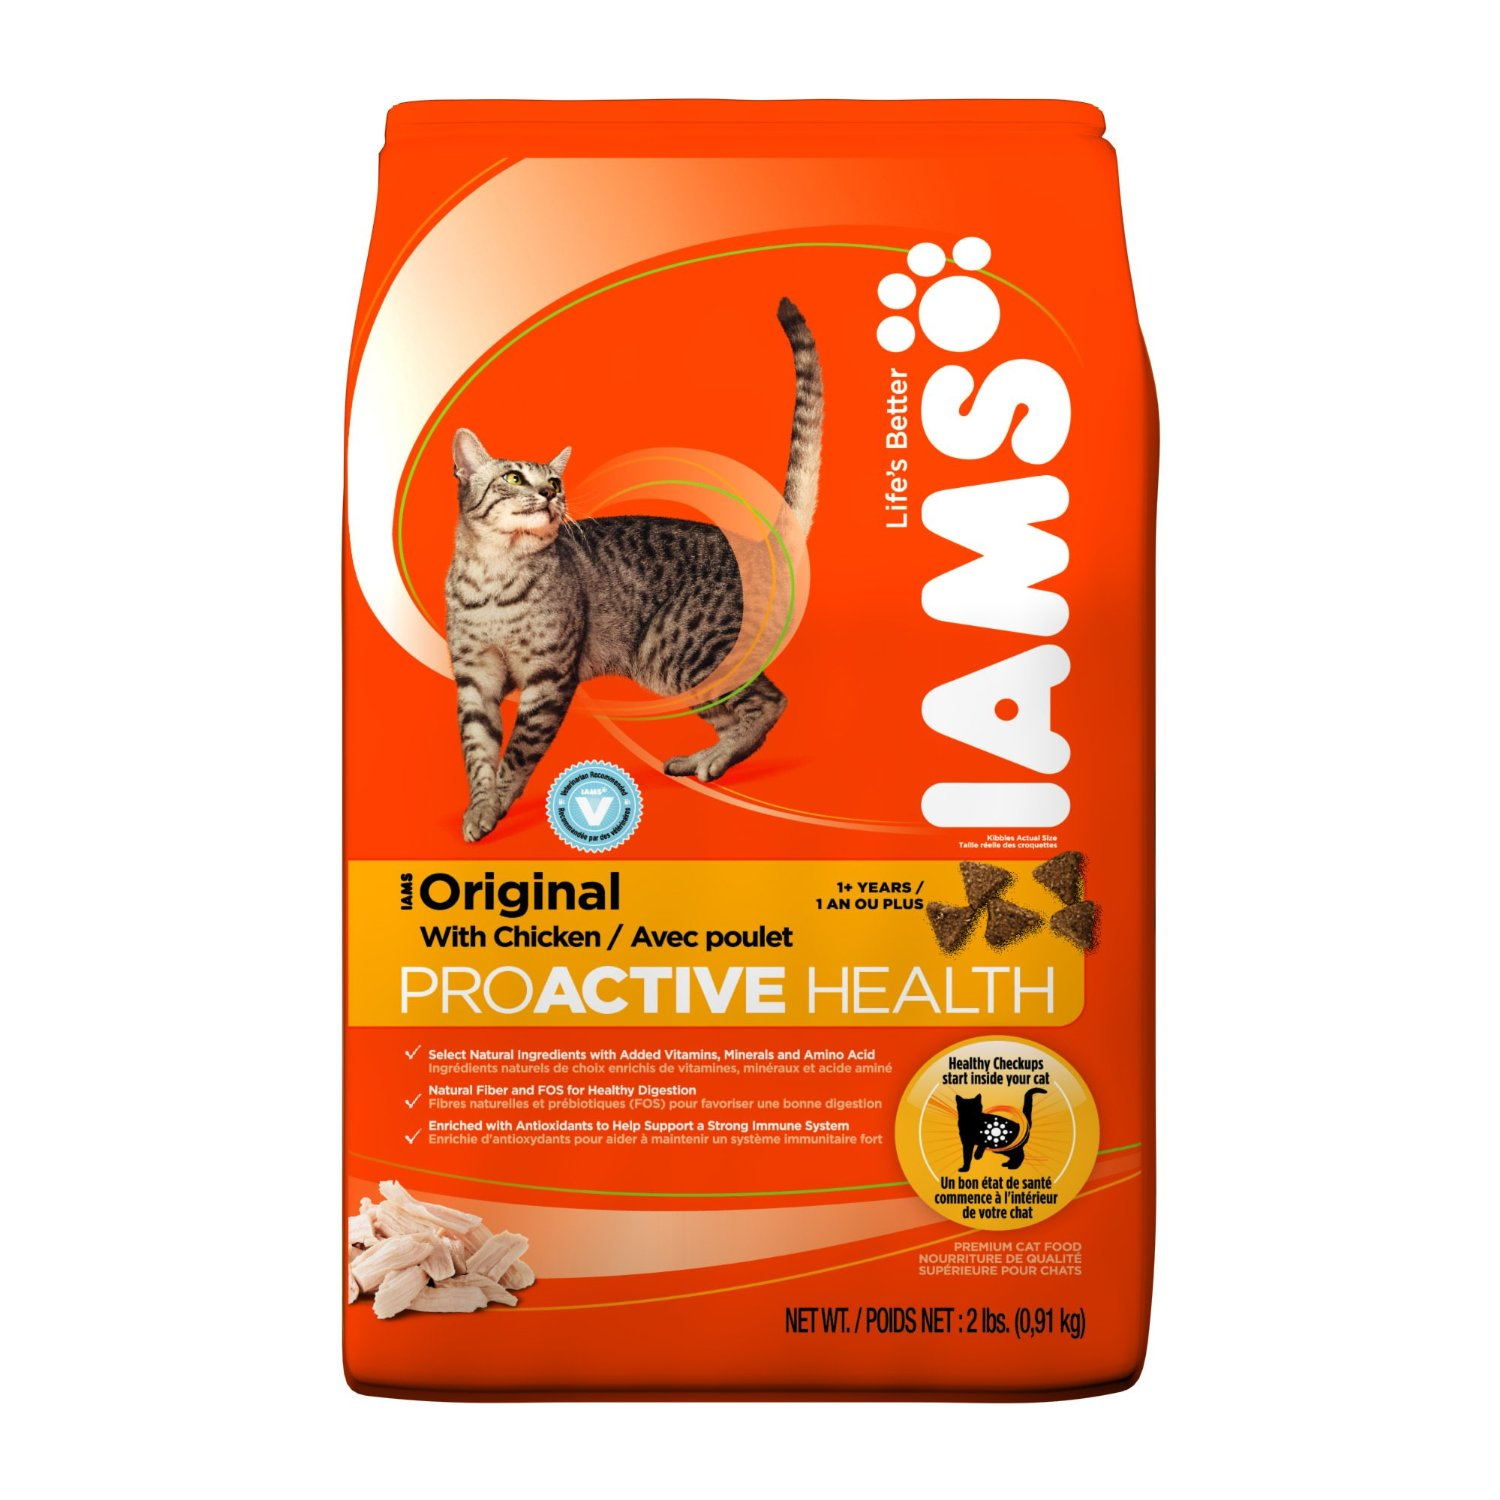 20% off Iams Cat Food Coupon